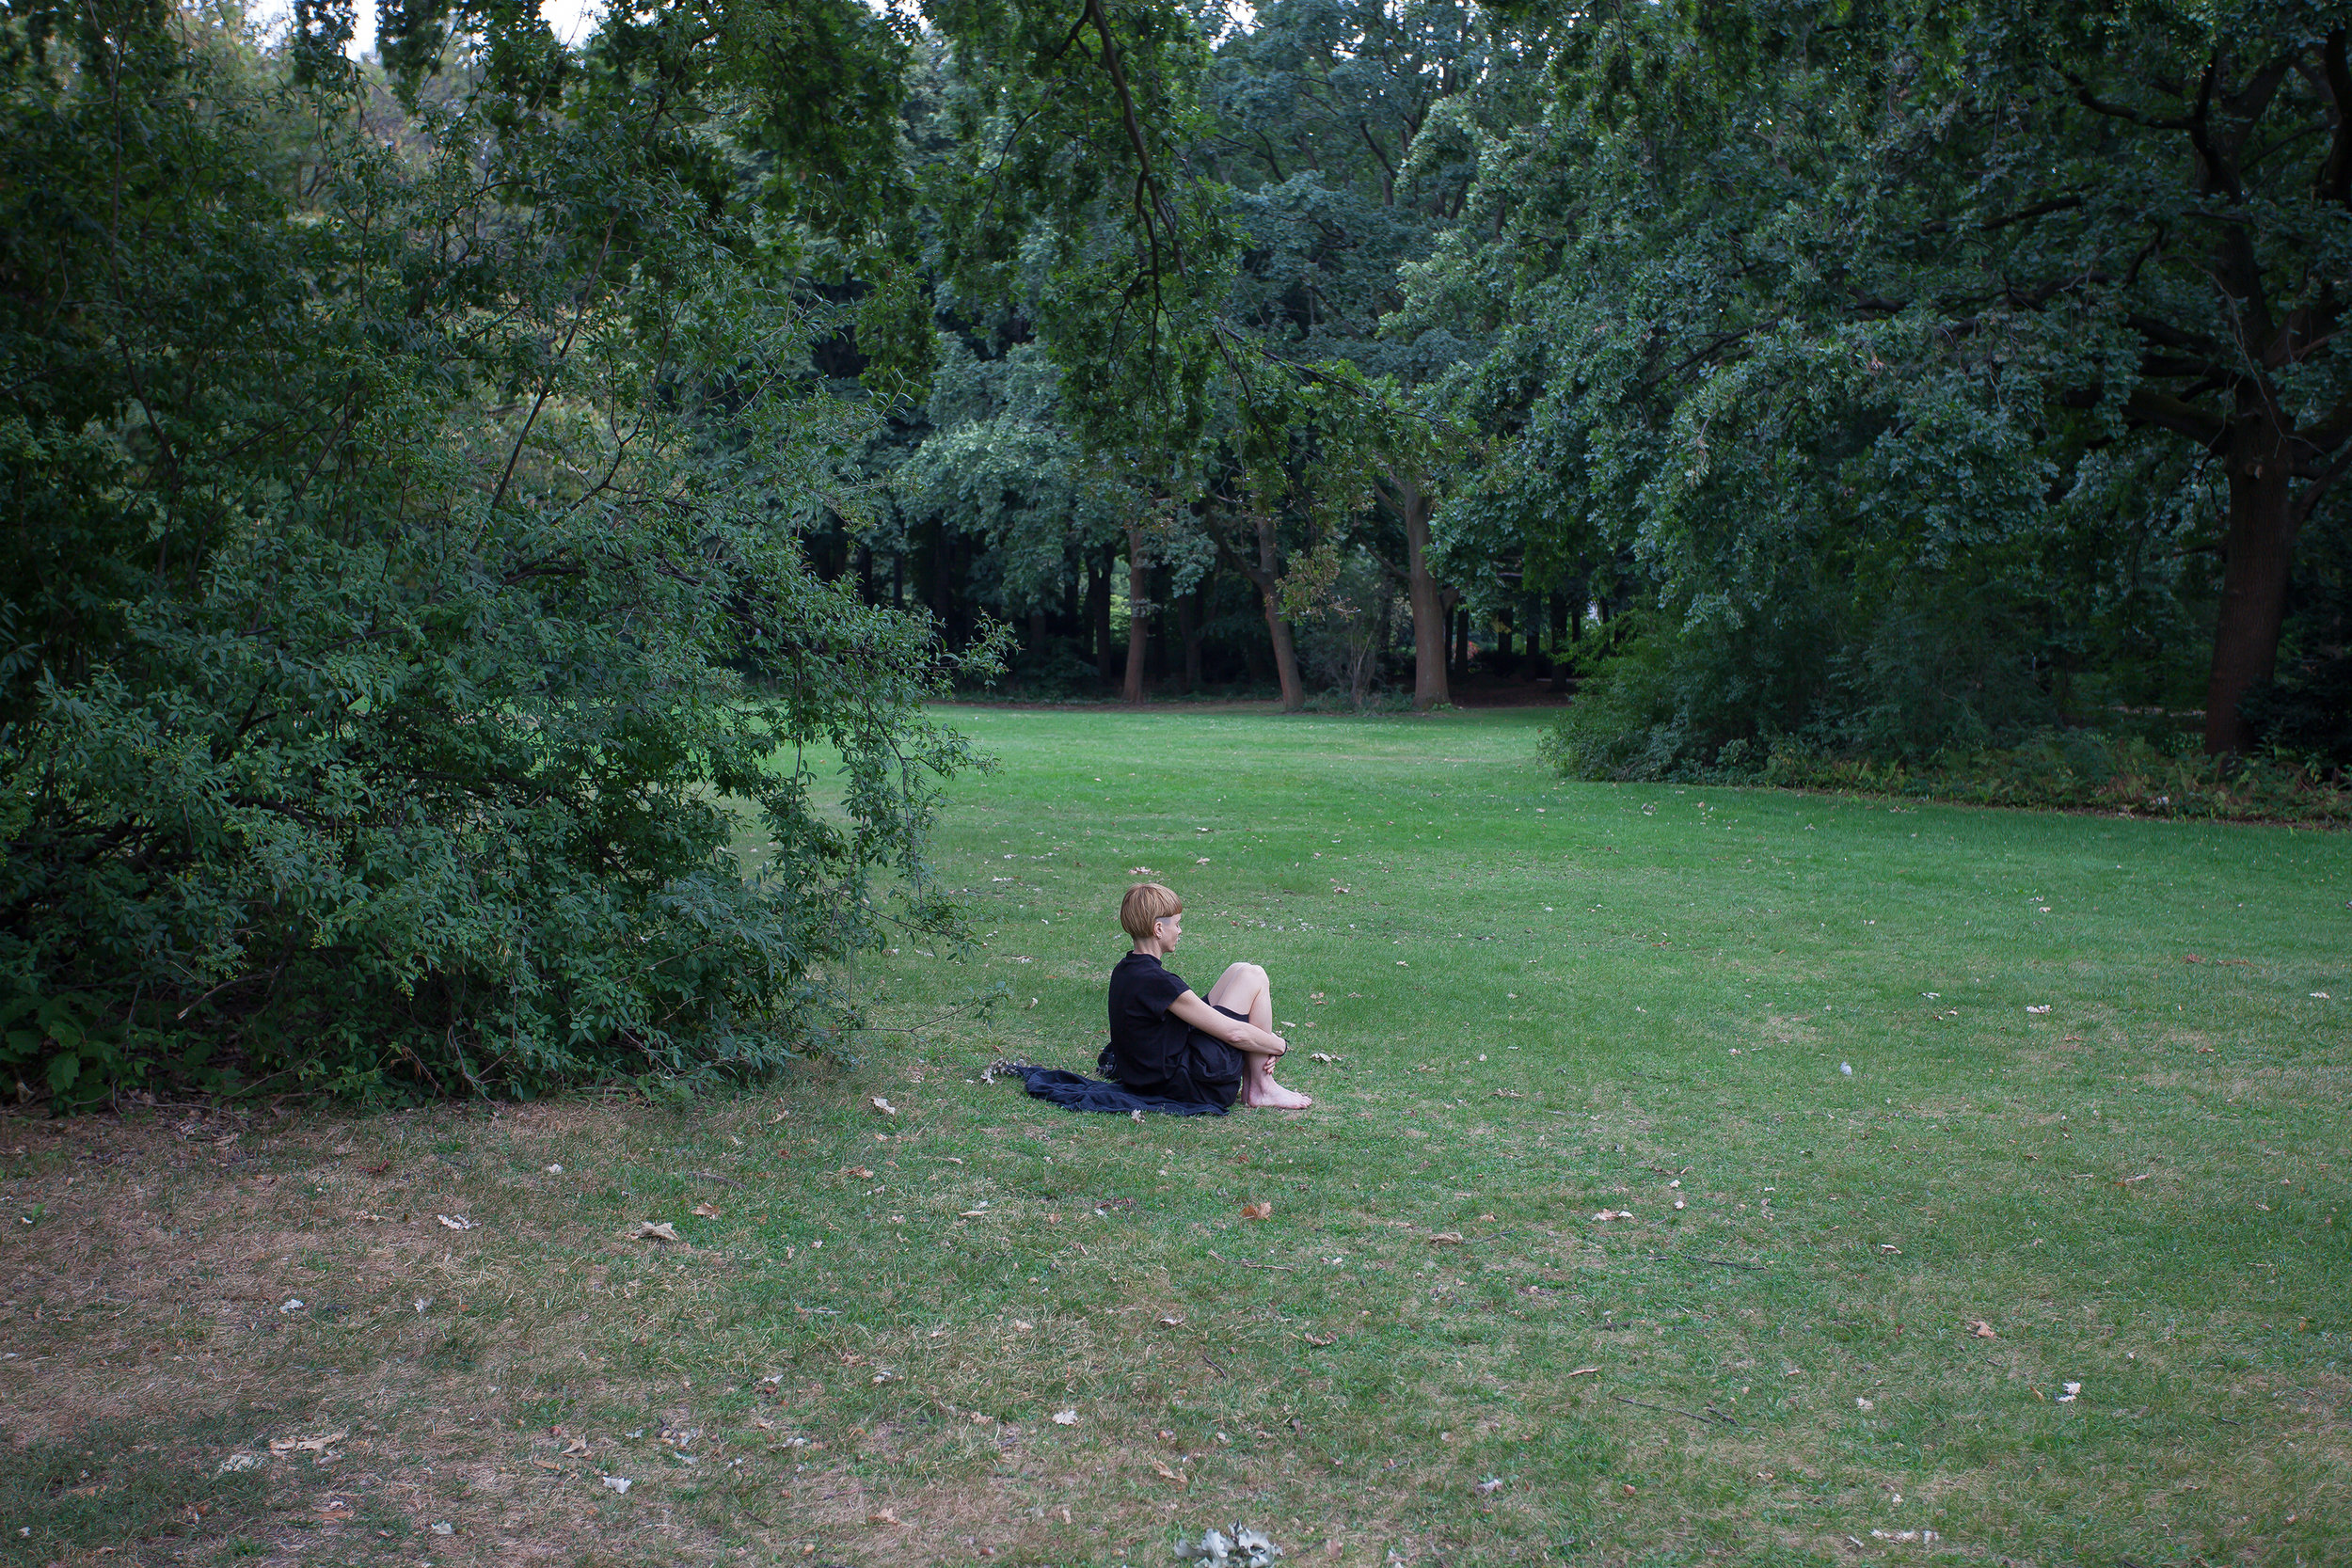 Forest bathing and sensory tuning in Tiergarten, Berlin. Photography: Lilia Luganskaia